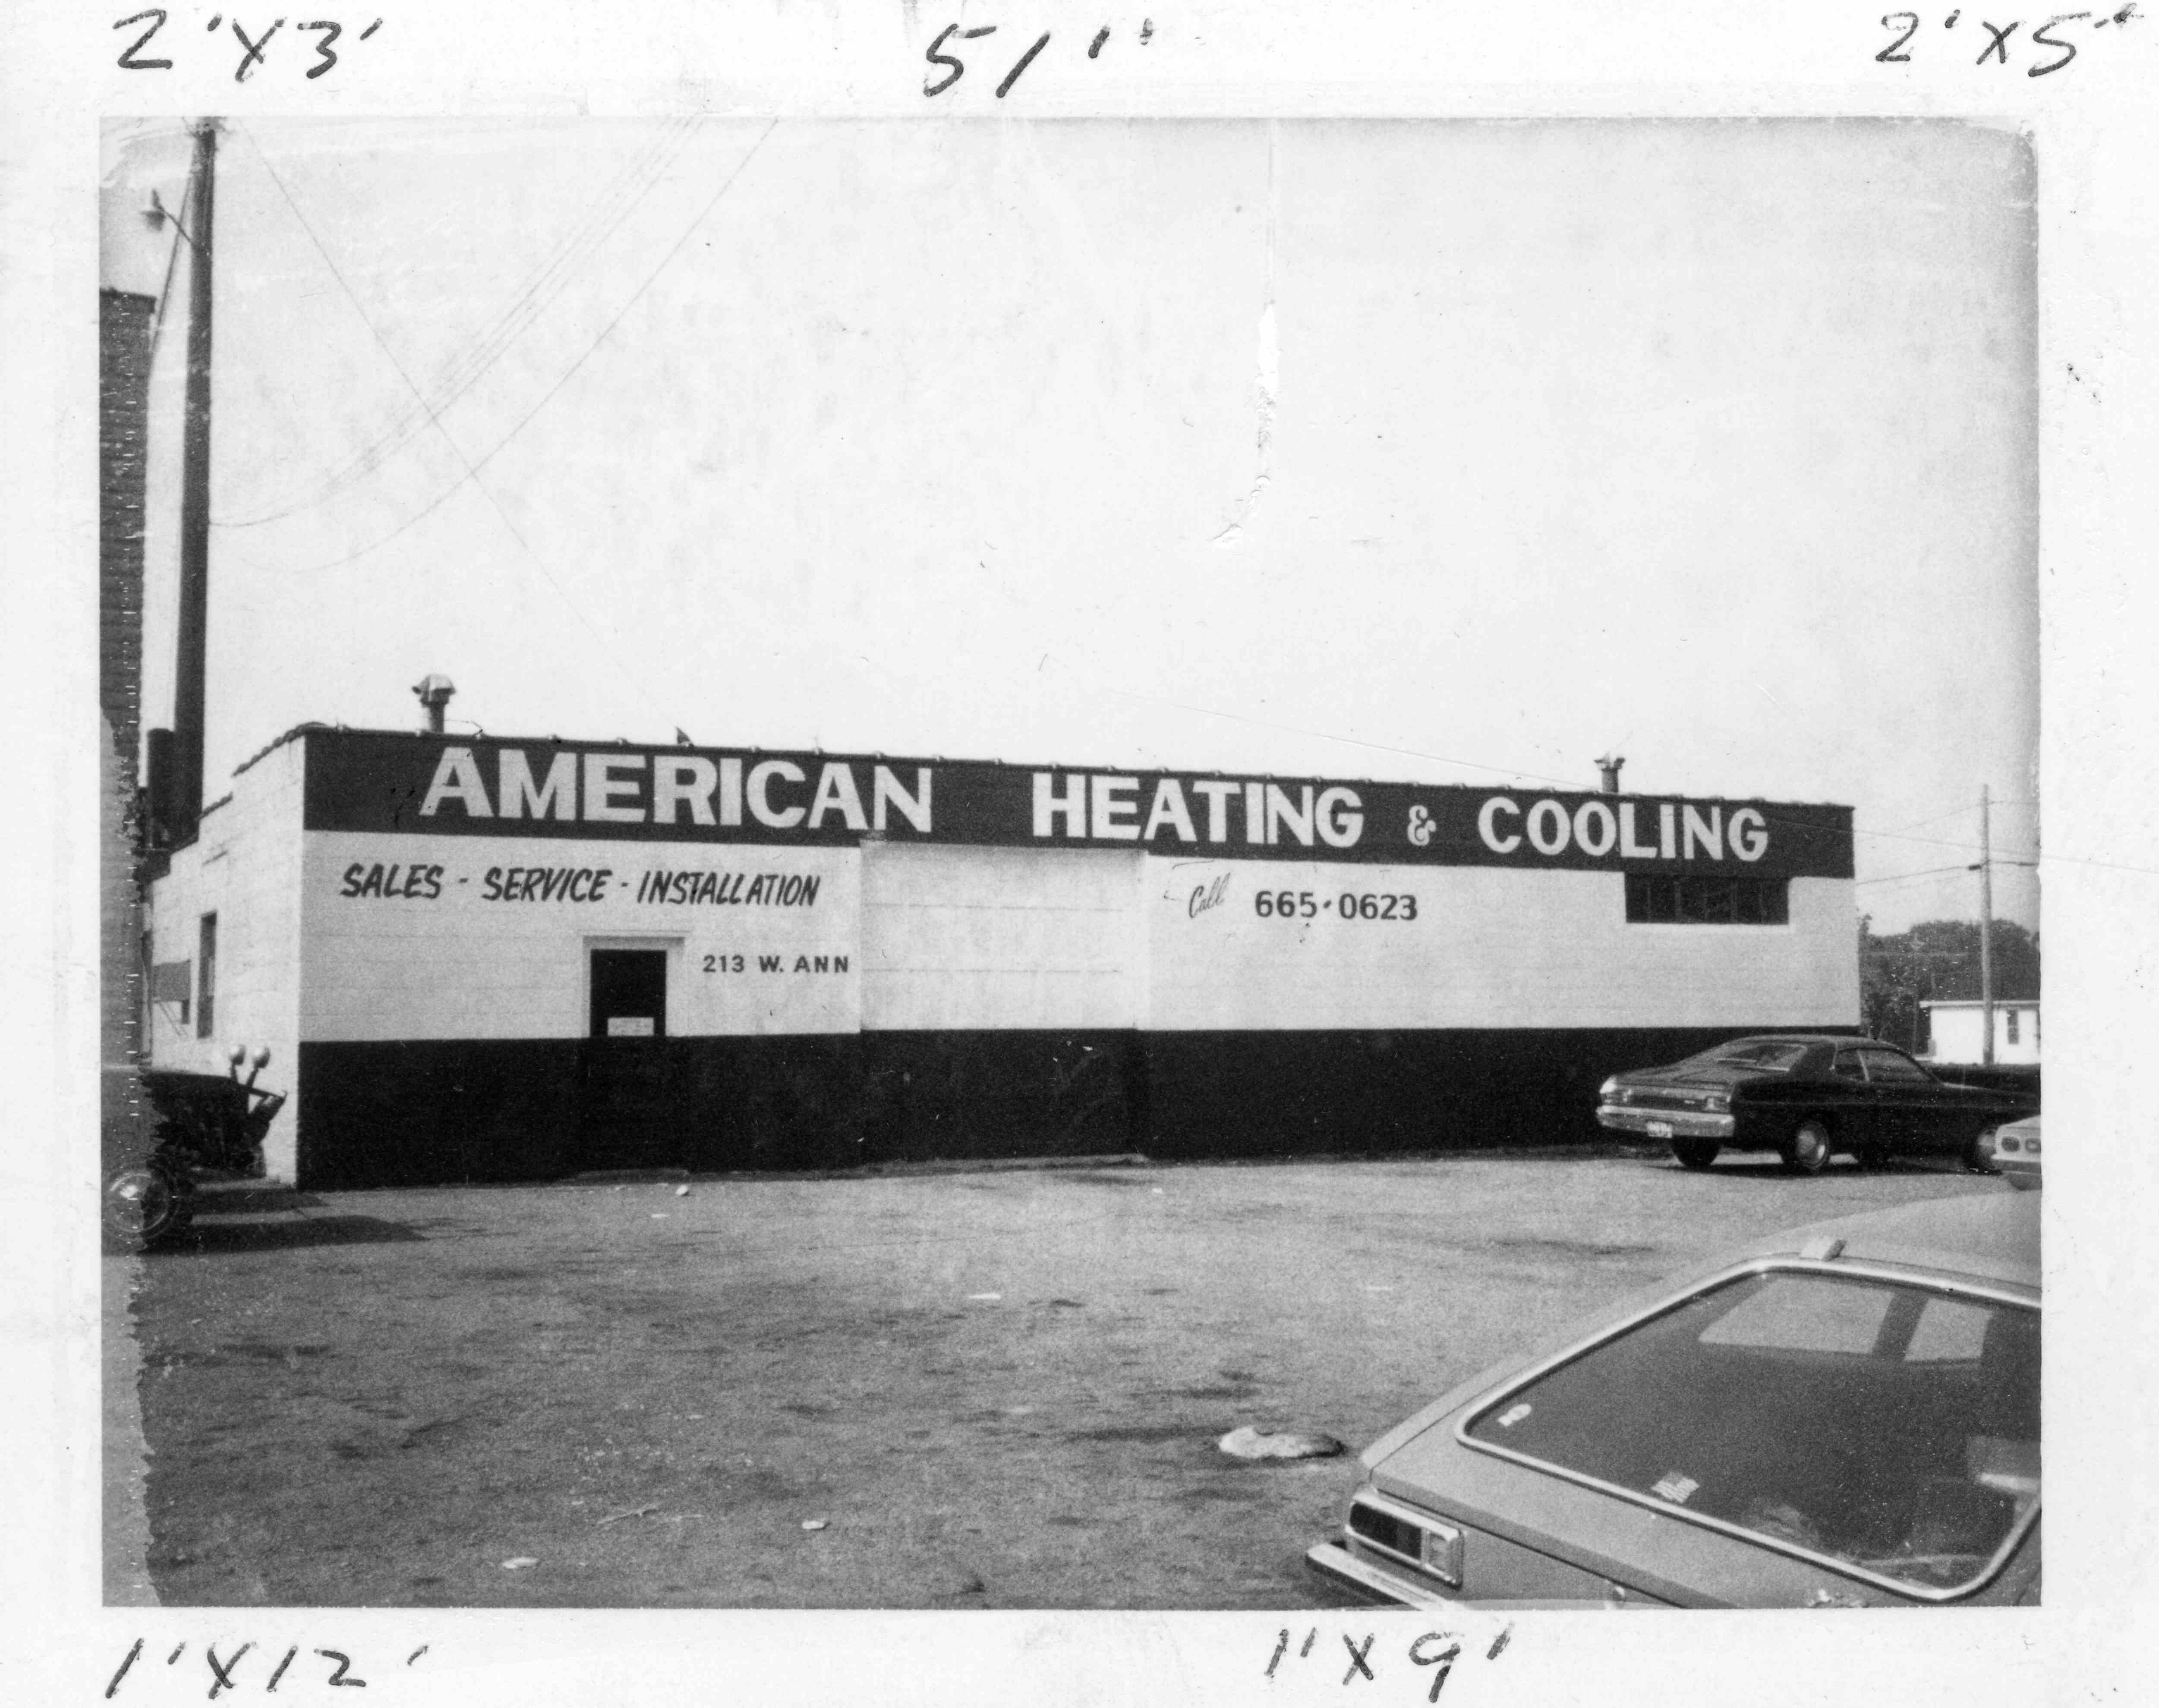 American Heating & Cooling, 1974 image